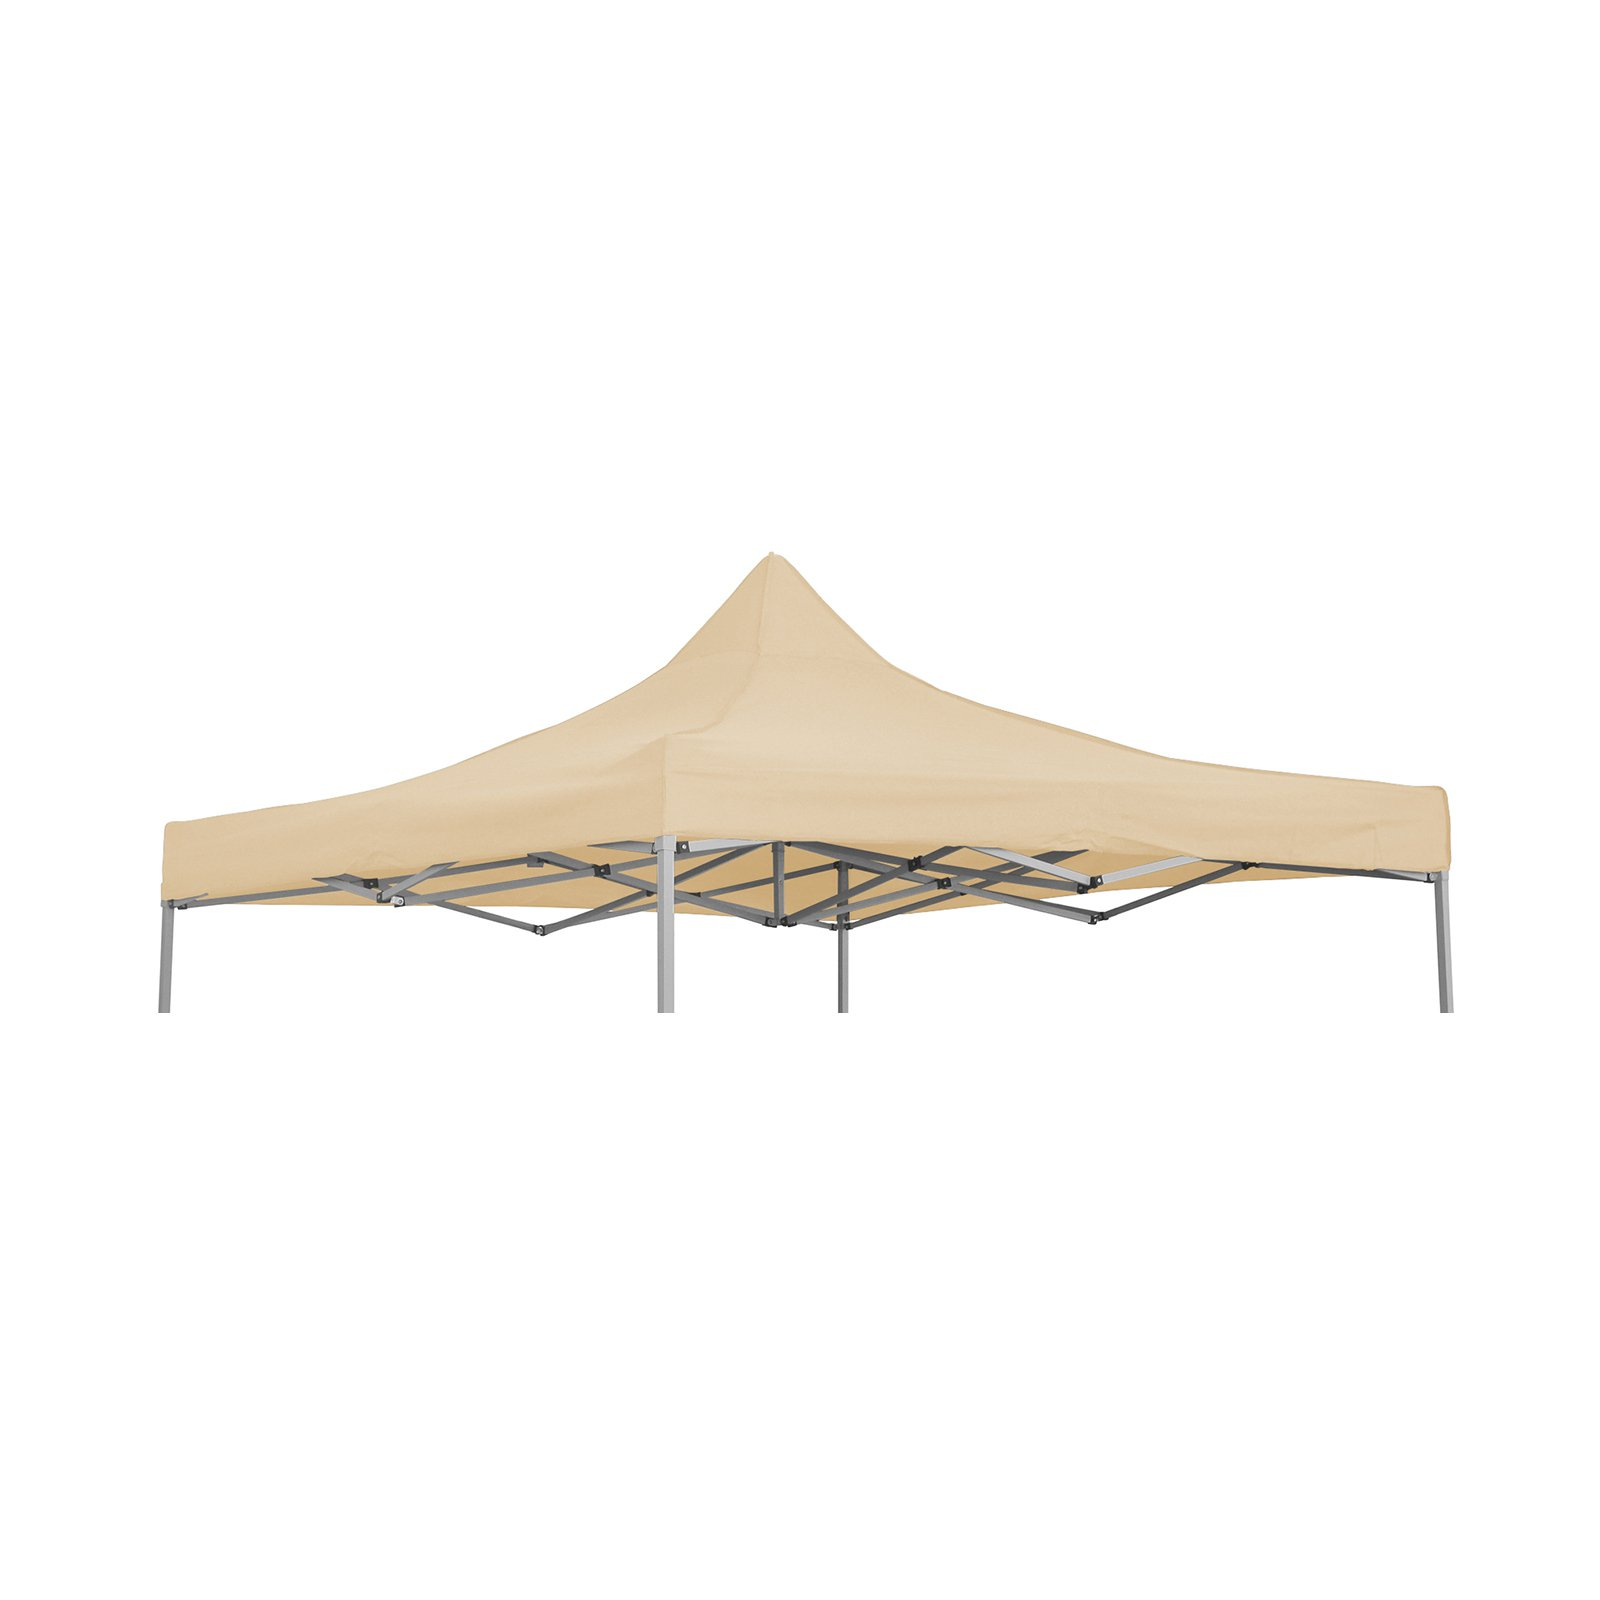 Trademark Innovations 9.6 x 9.6 ft. Square Replacement Canopy Gazebo Top  sc 1 st  Walmart : replacement canopy for gazebo - memphite.com